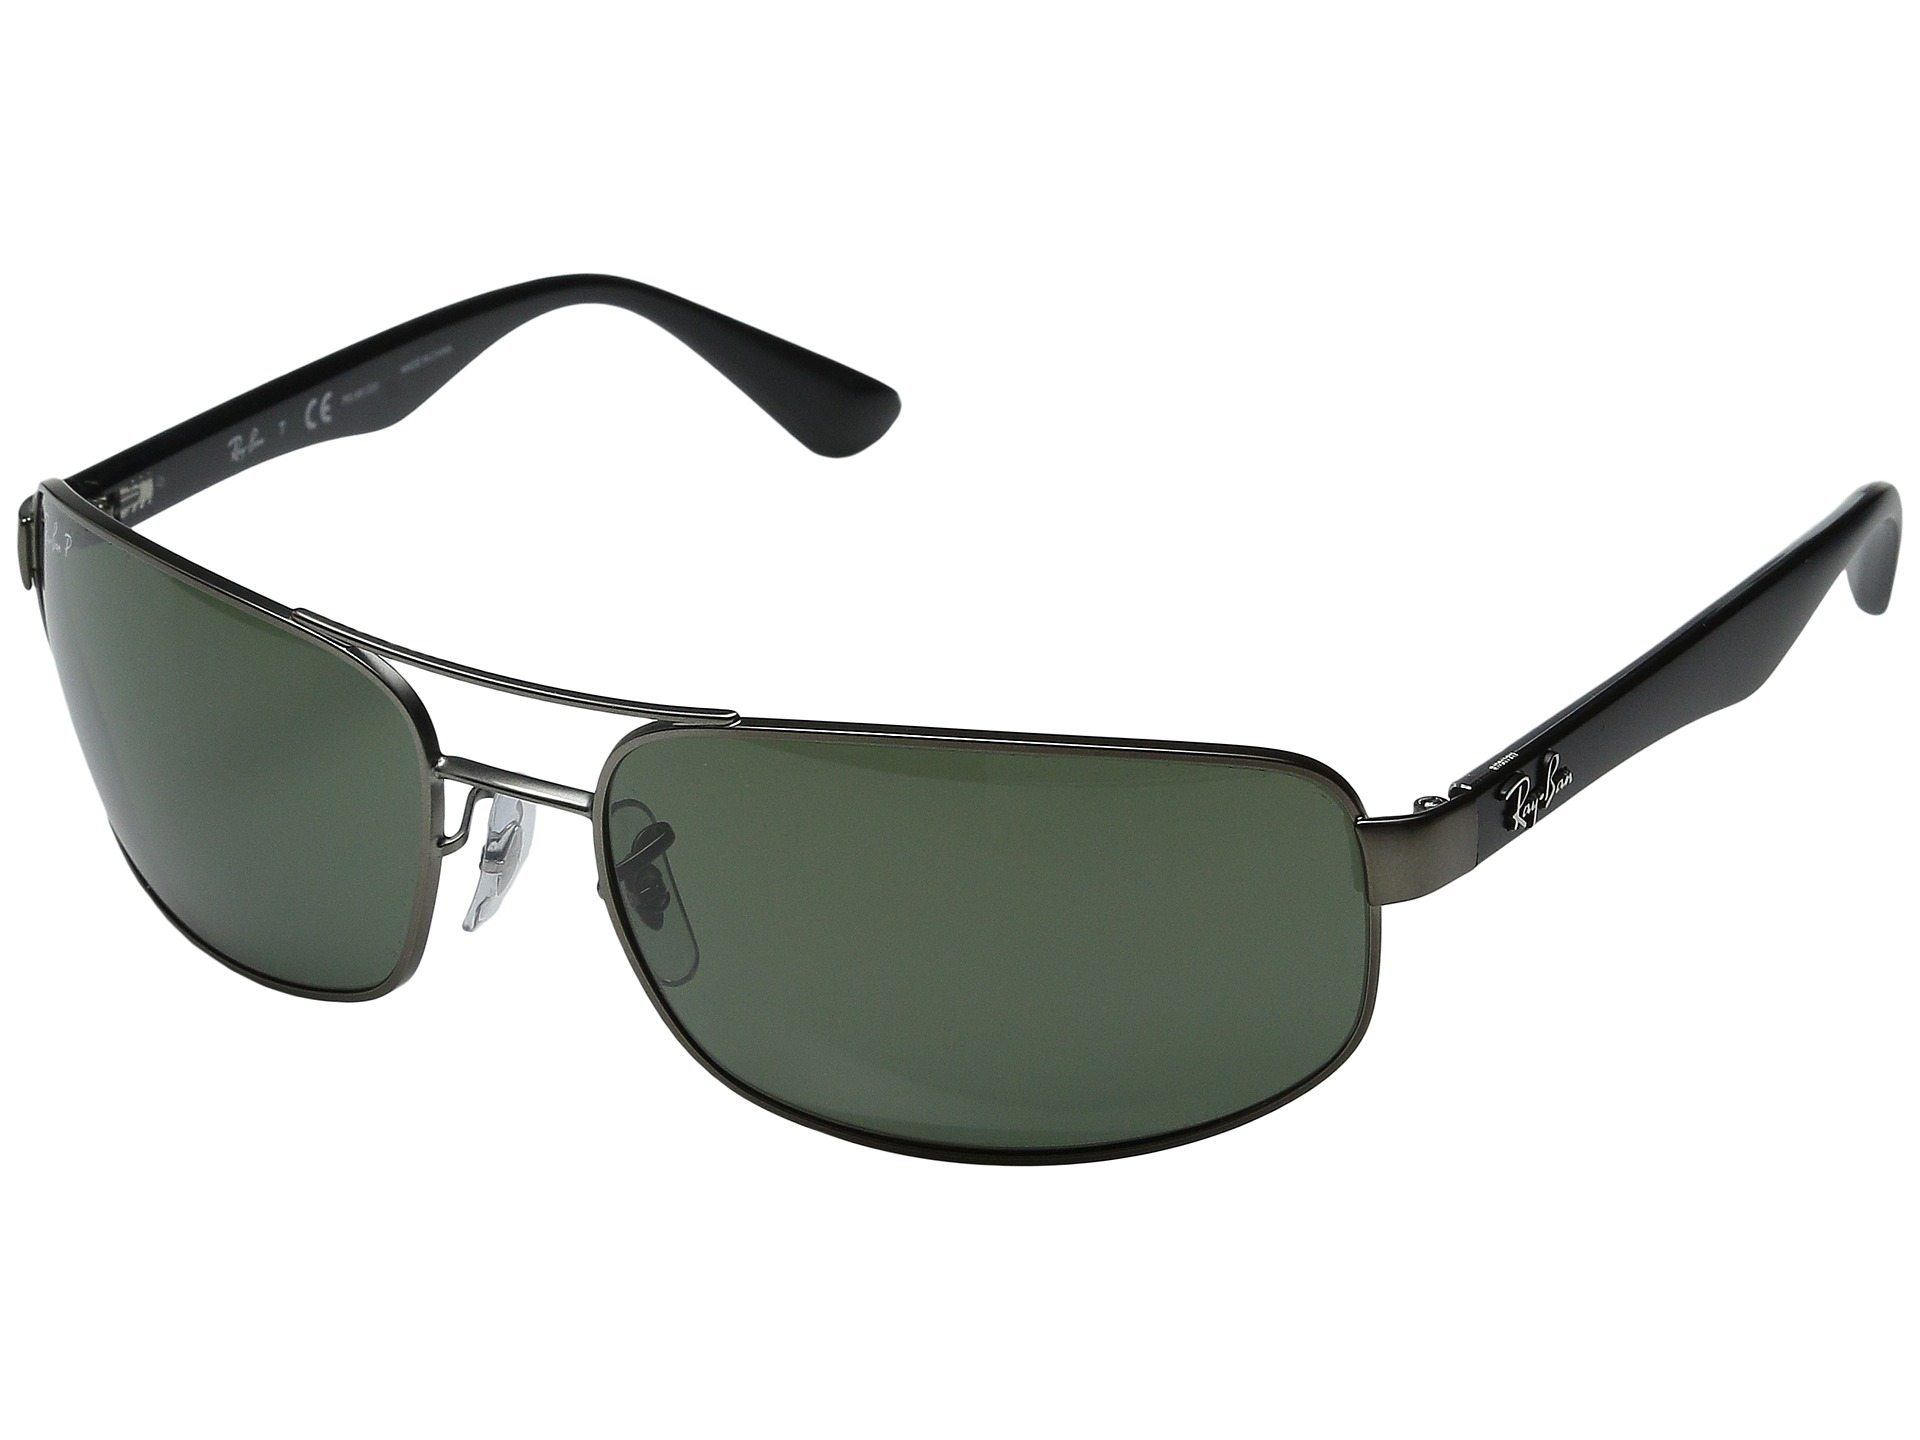 Ray Ban Sunglasses Warranty  ray ban sunglasses repair